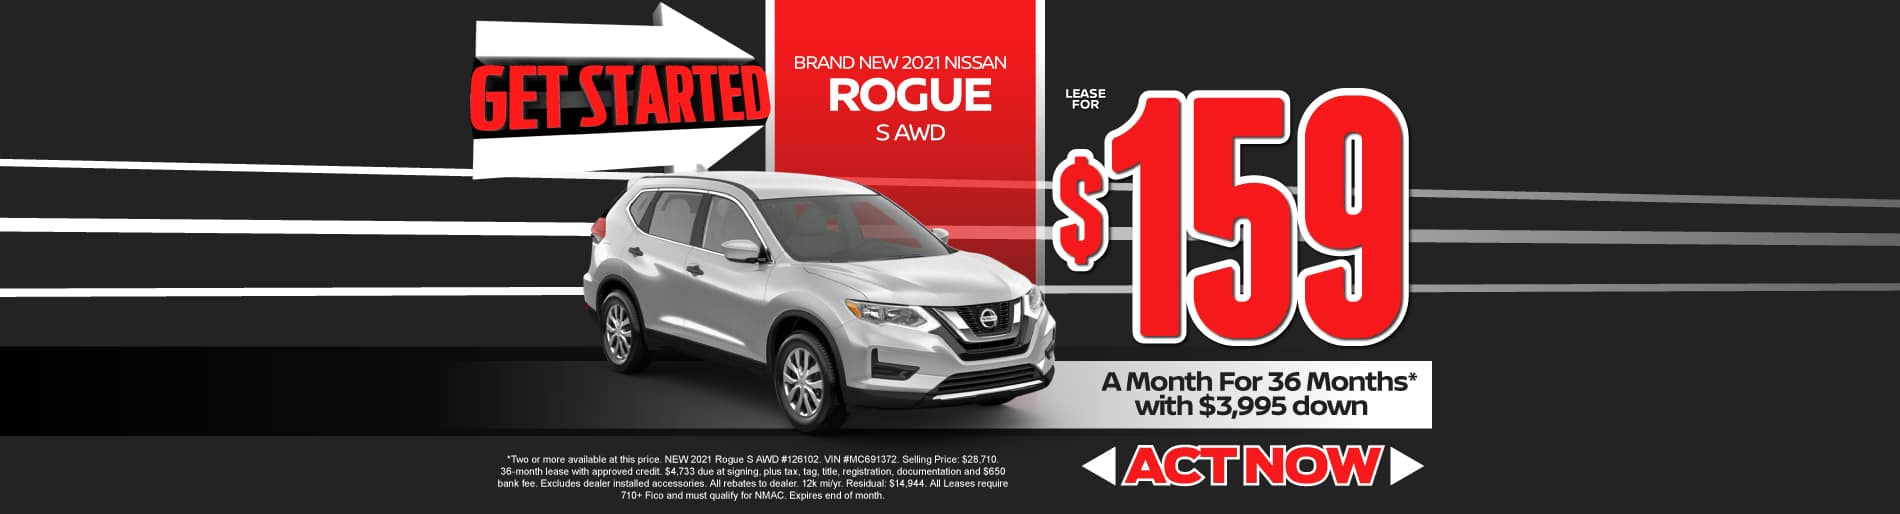 2021 Nissan Rogue S lease for $159/mo. for 36 mos. with $3995 down. Act now.